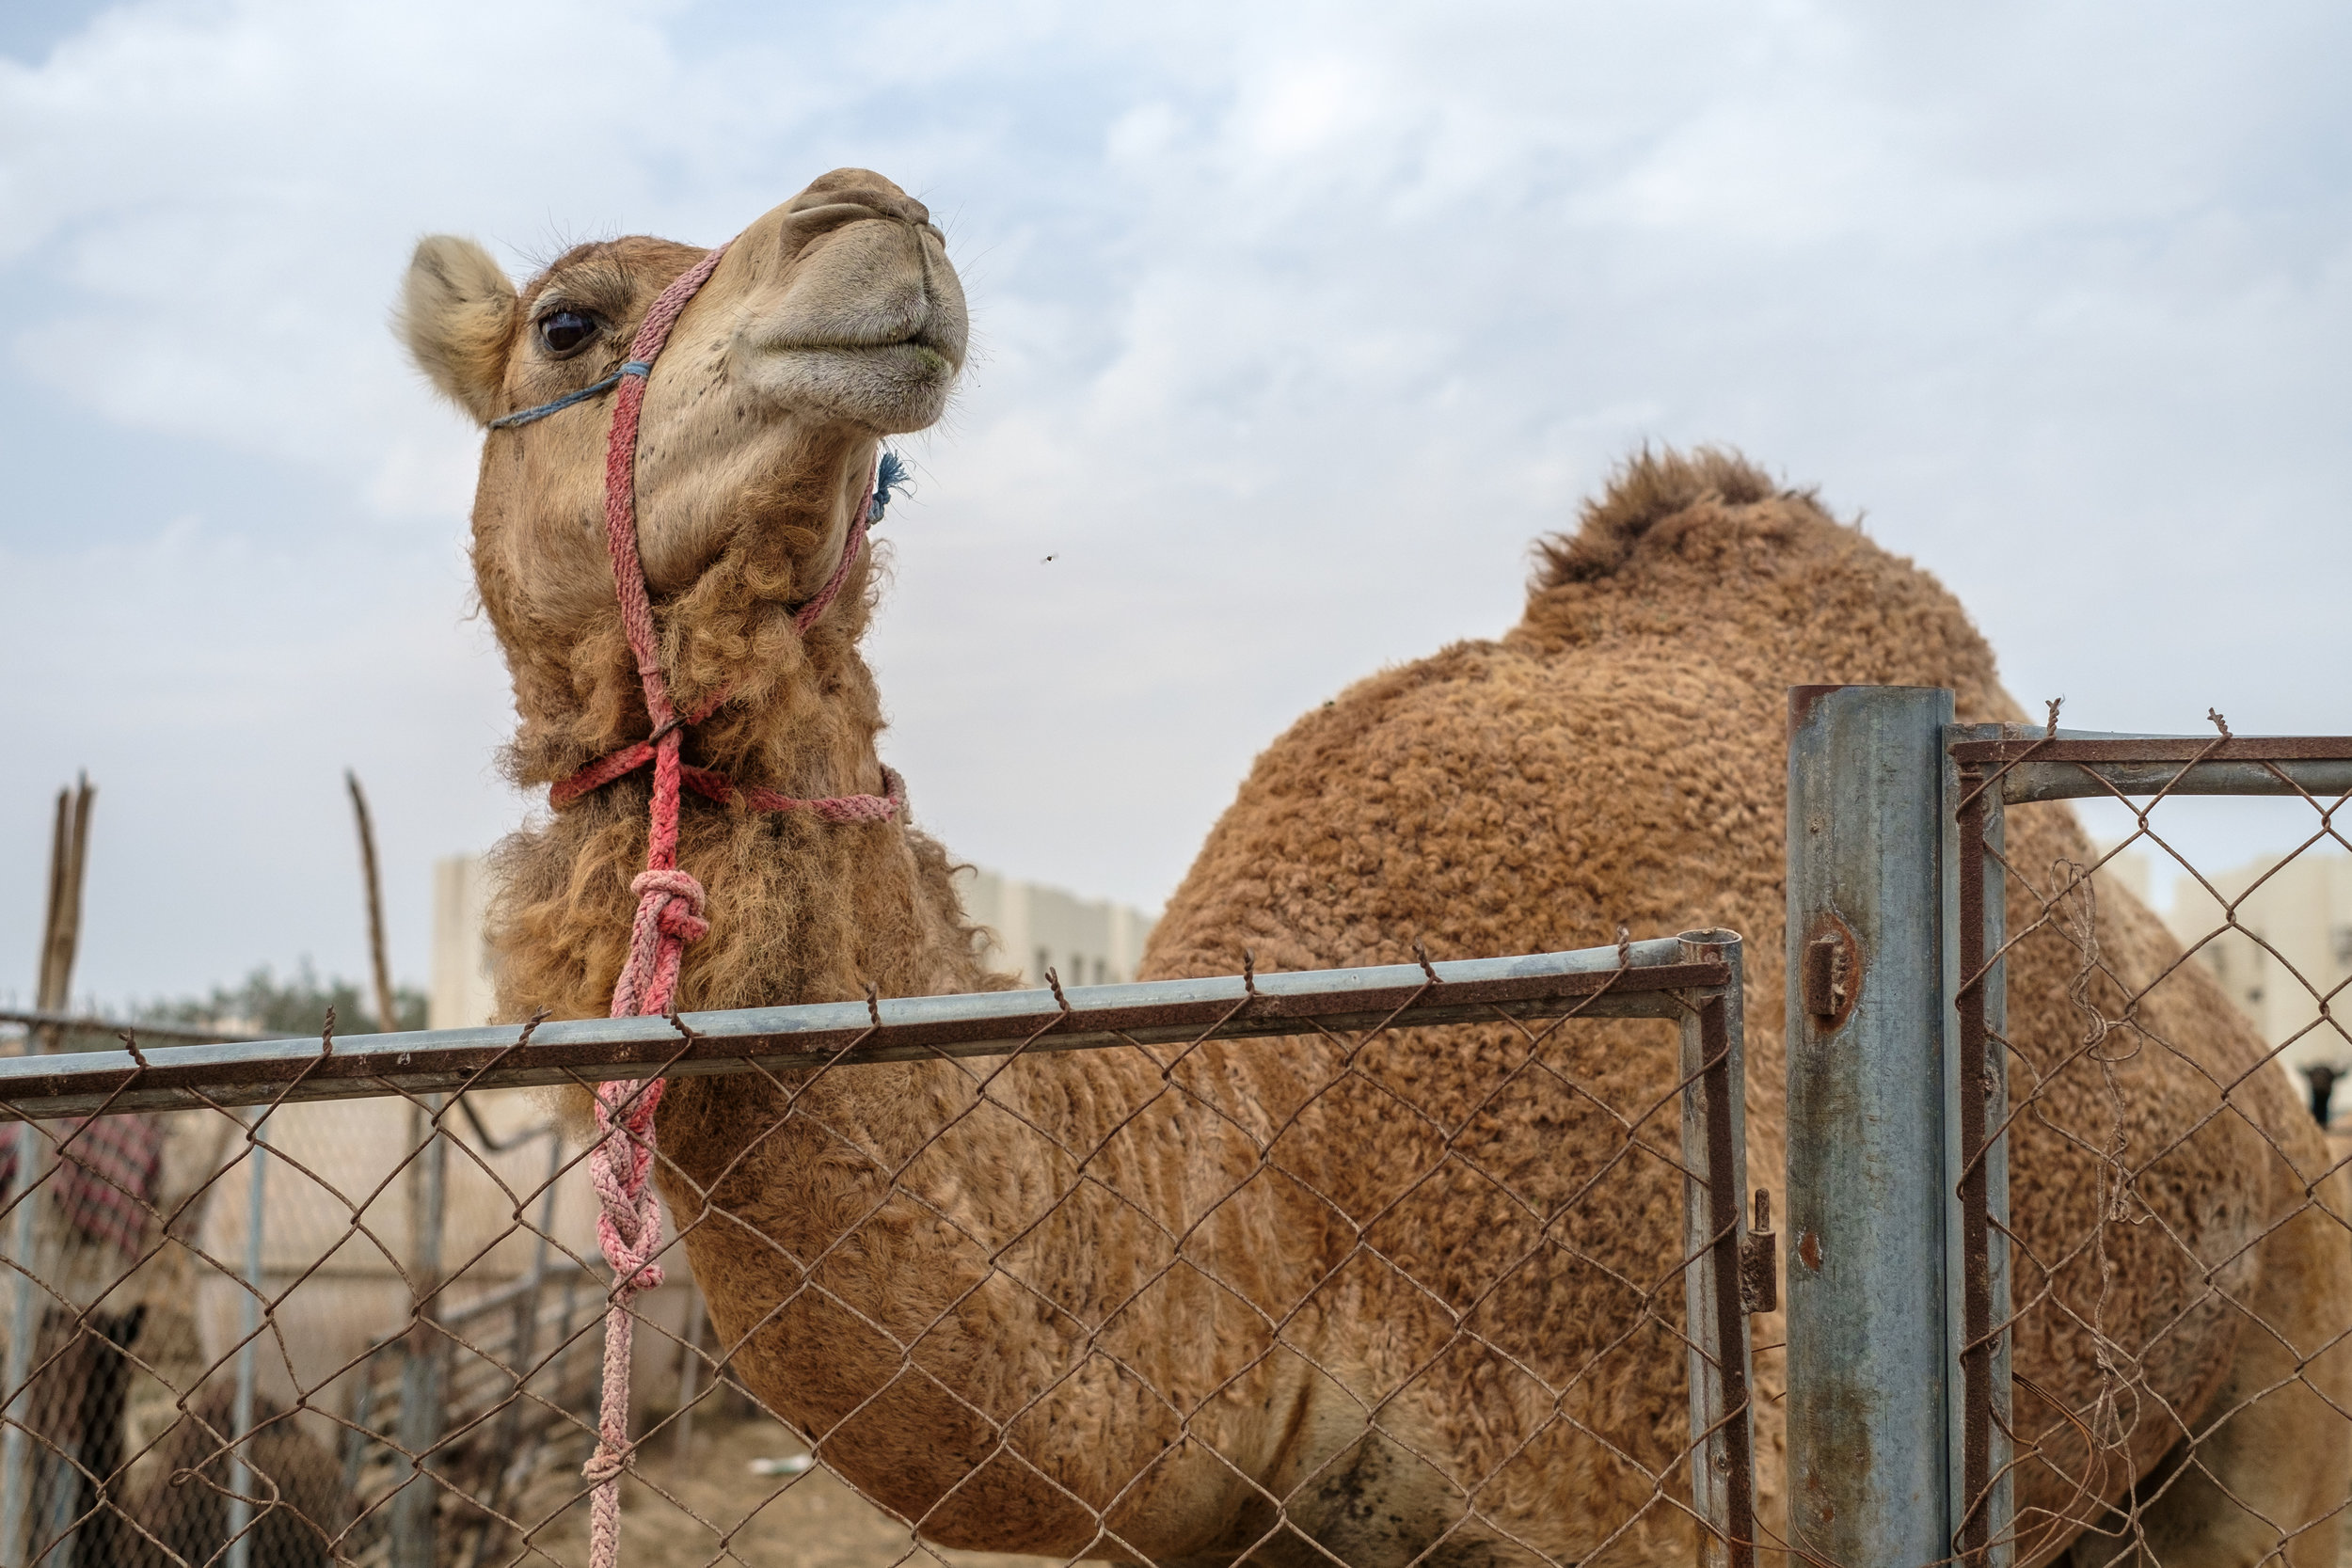 A camel waiting to be sold at the Camel Market in the Abu Hammour district on the outskirts of Doha.